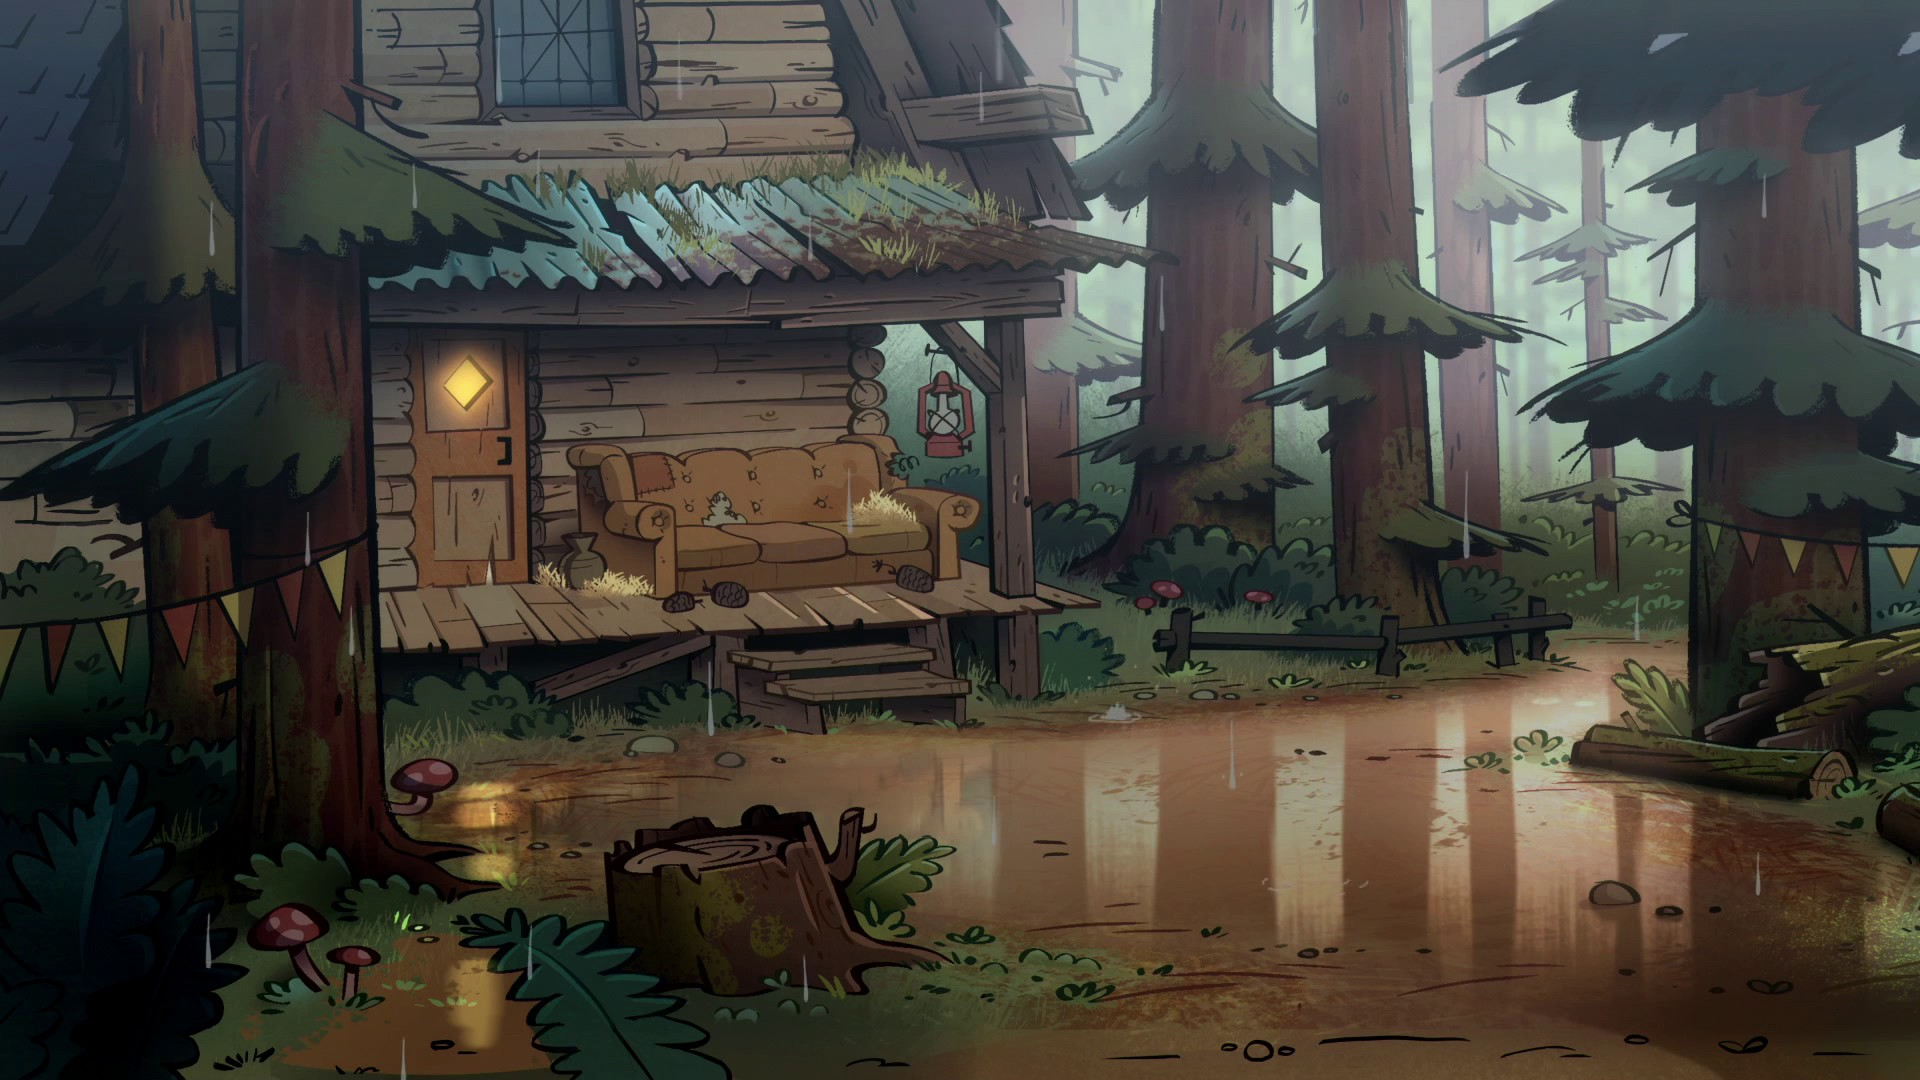 Gravity Falls Wallpaper Hd Android 59 Gravity Falls Backgrounds 183 ① Download Free Amazing Hd